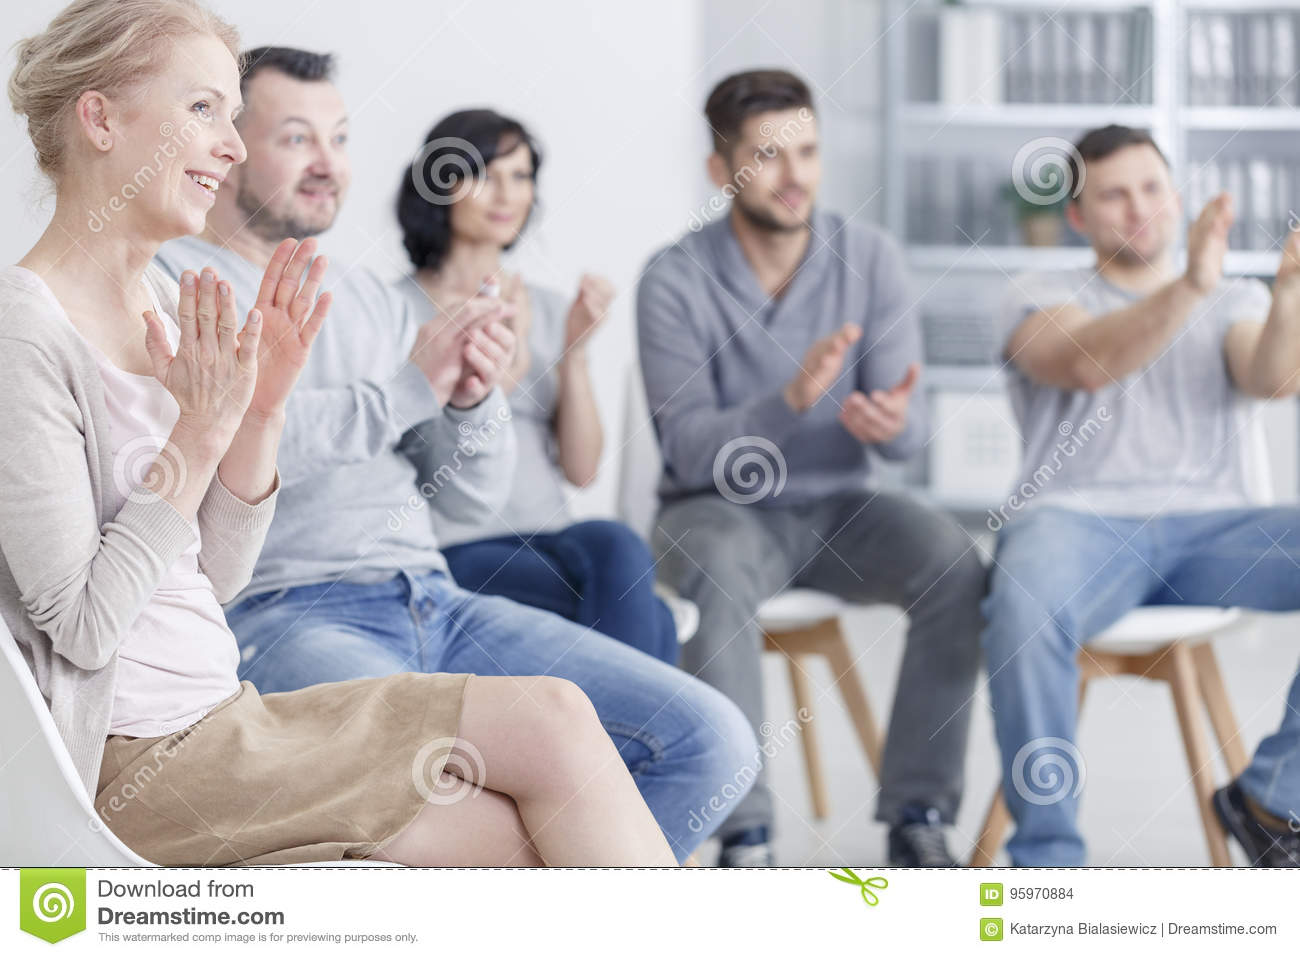 Clapping at support group meeting